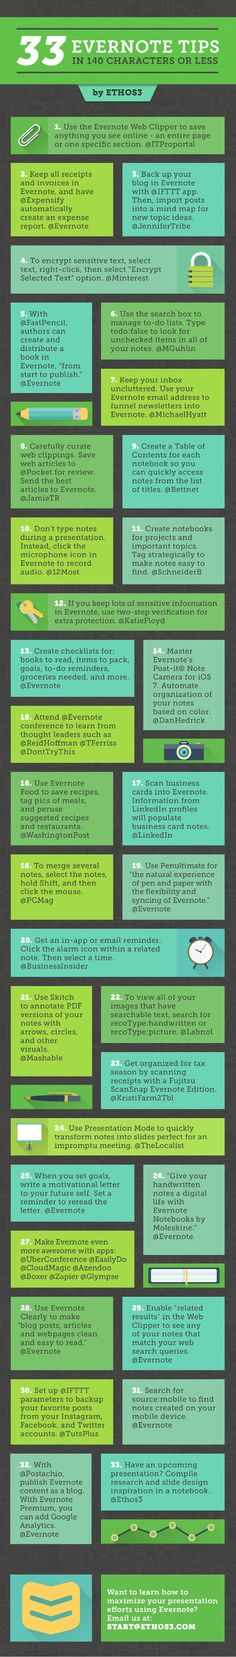 33 #Evernote Tips, i